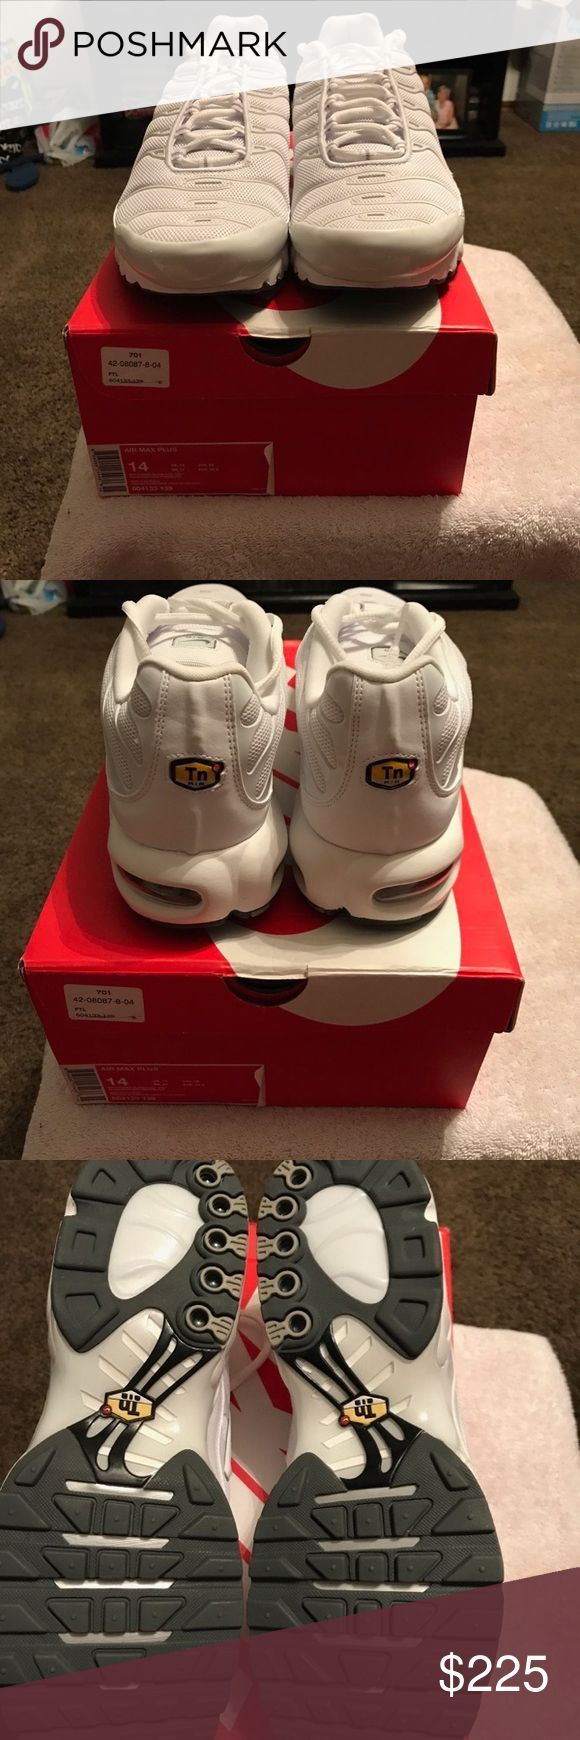 Nike air max plus tn Brand new Nike Shoes Sneakers